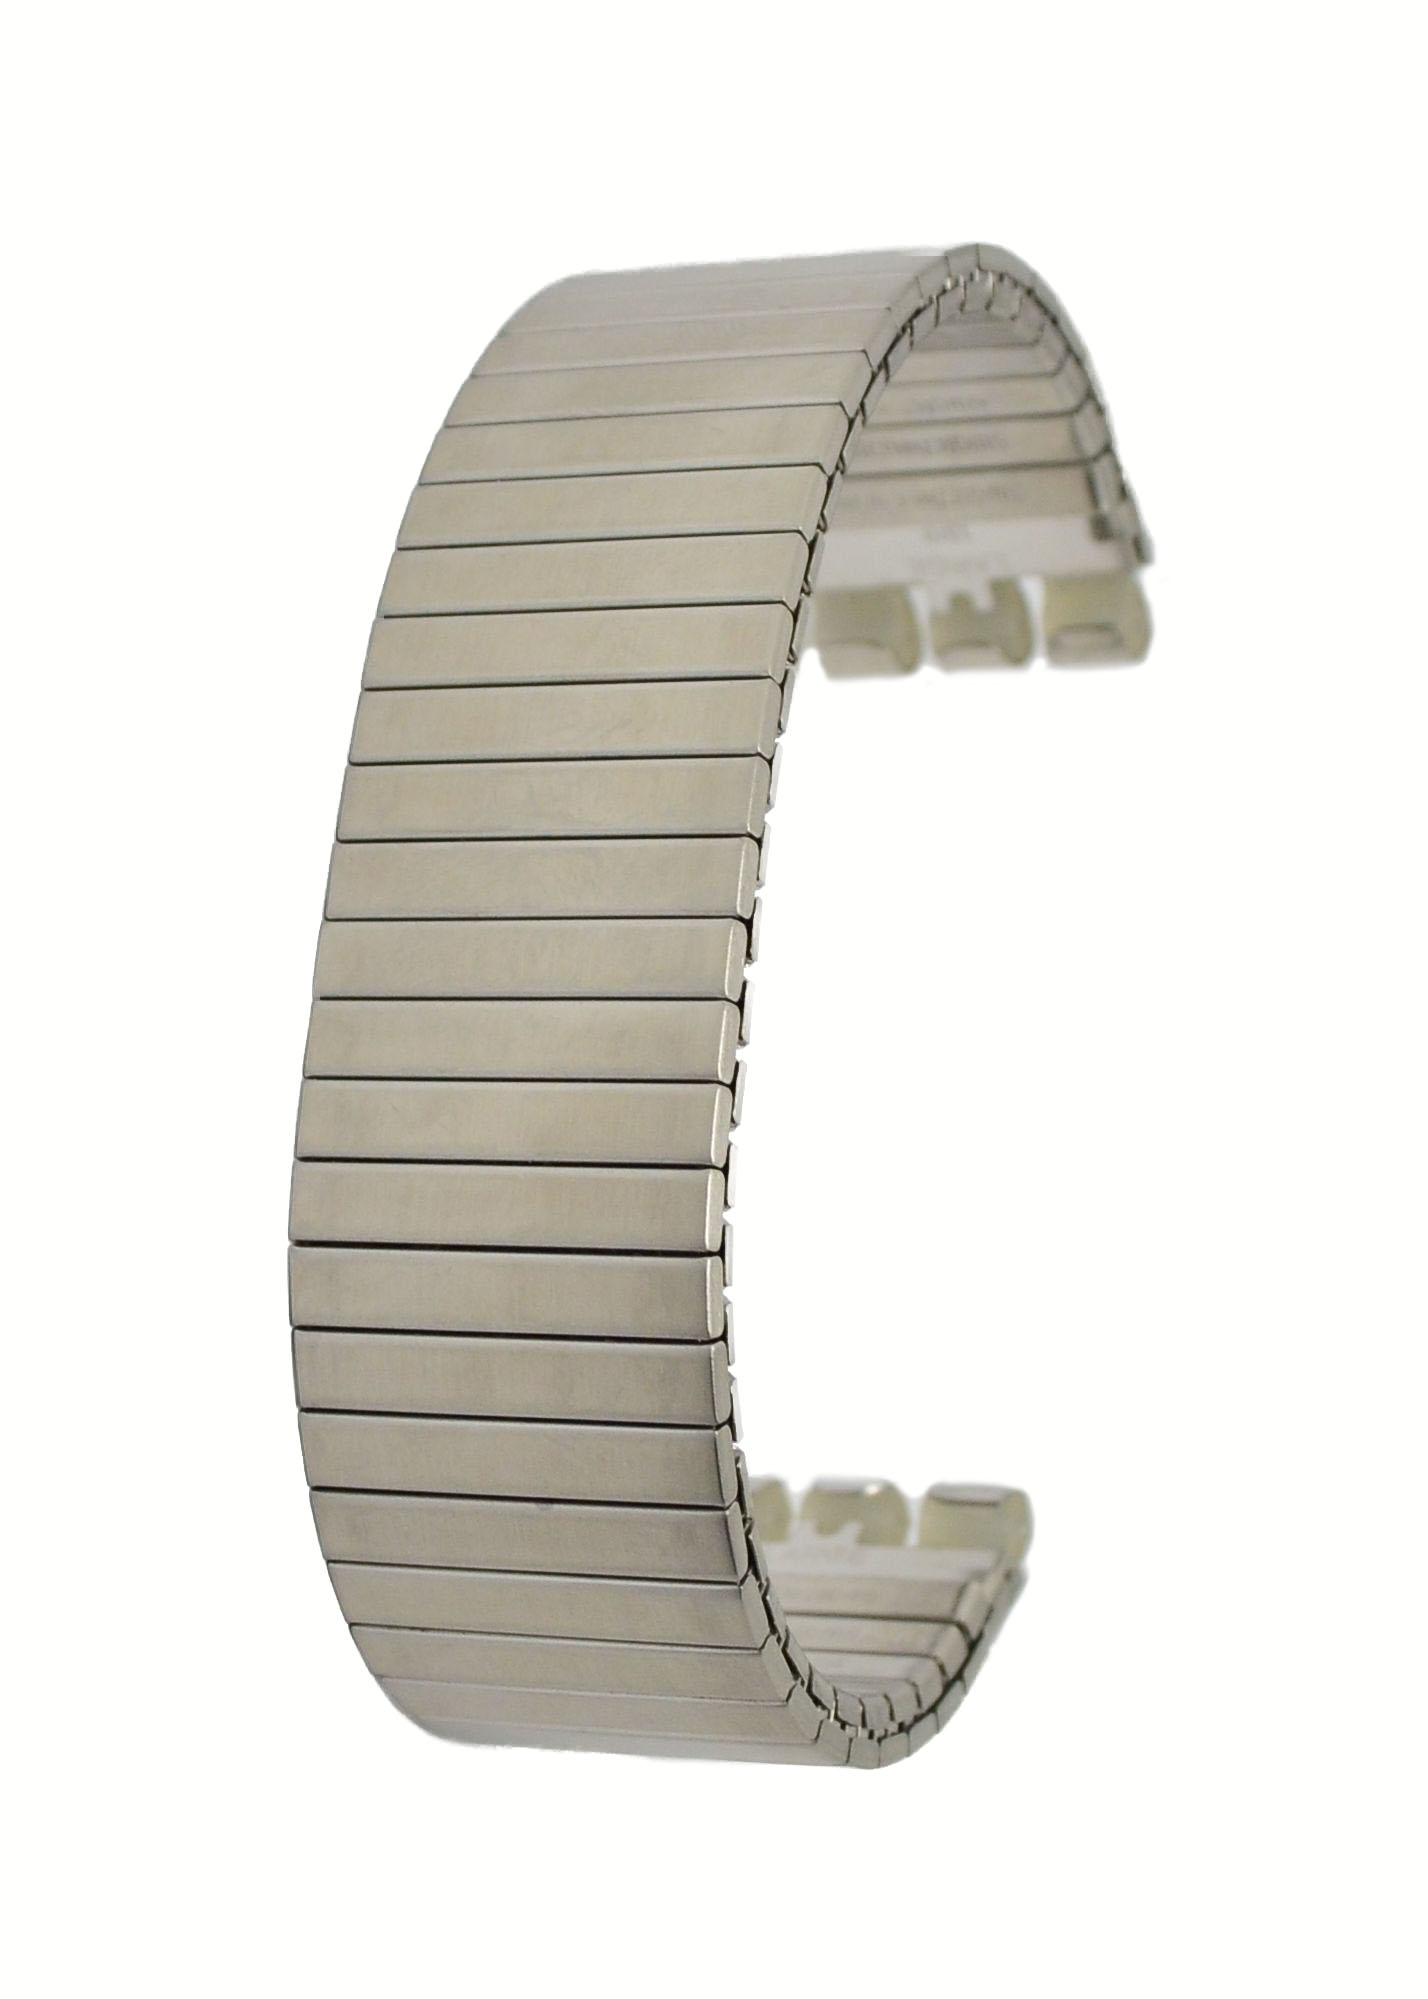 Swatch Stainless Steel Expanding Watch Bracelet 'Resolution'  ASUOK700A